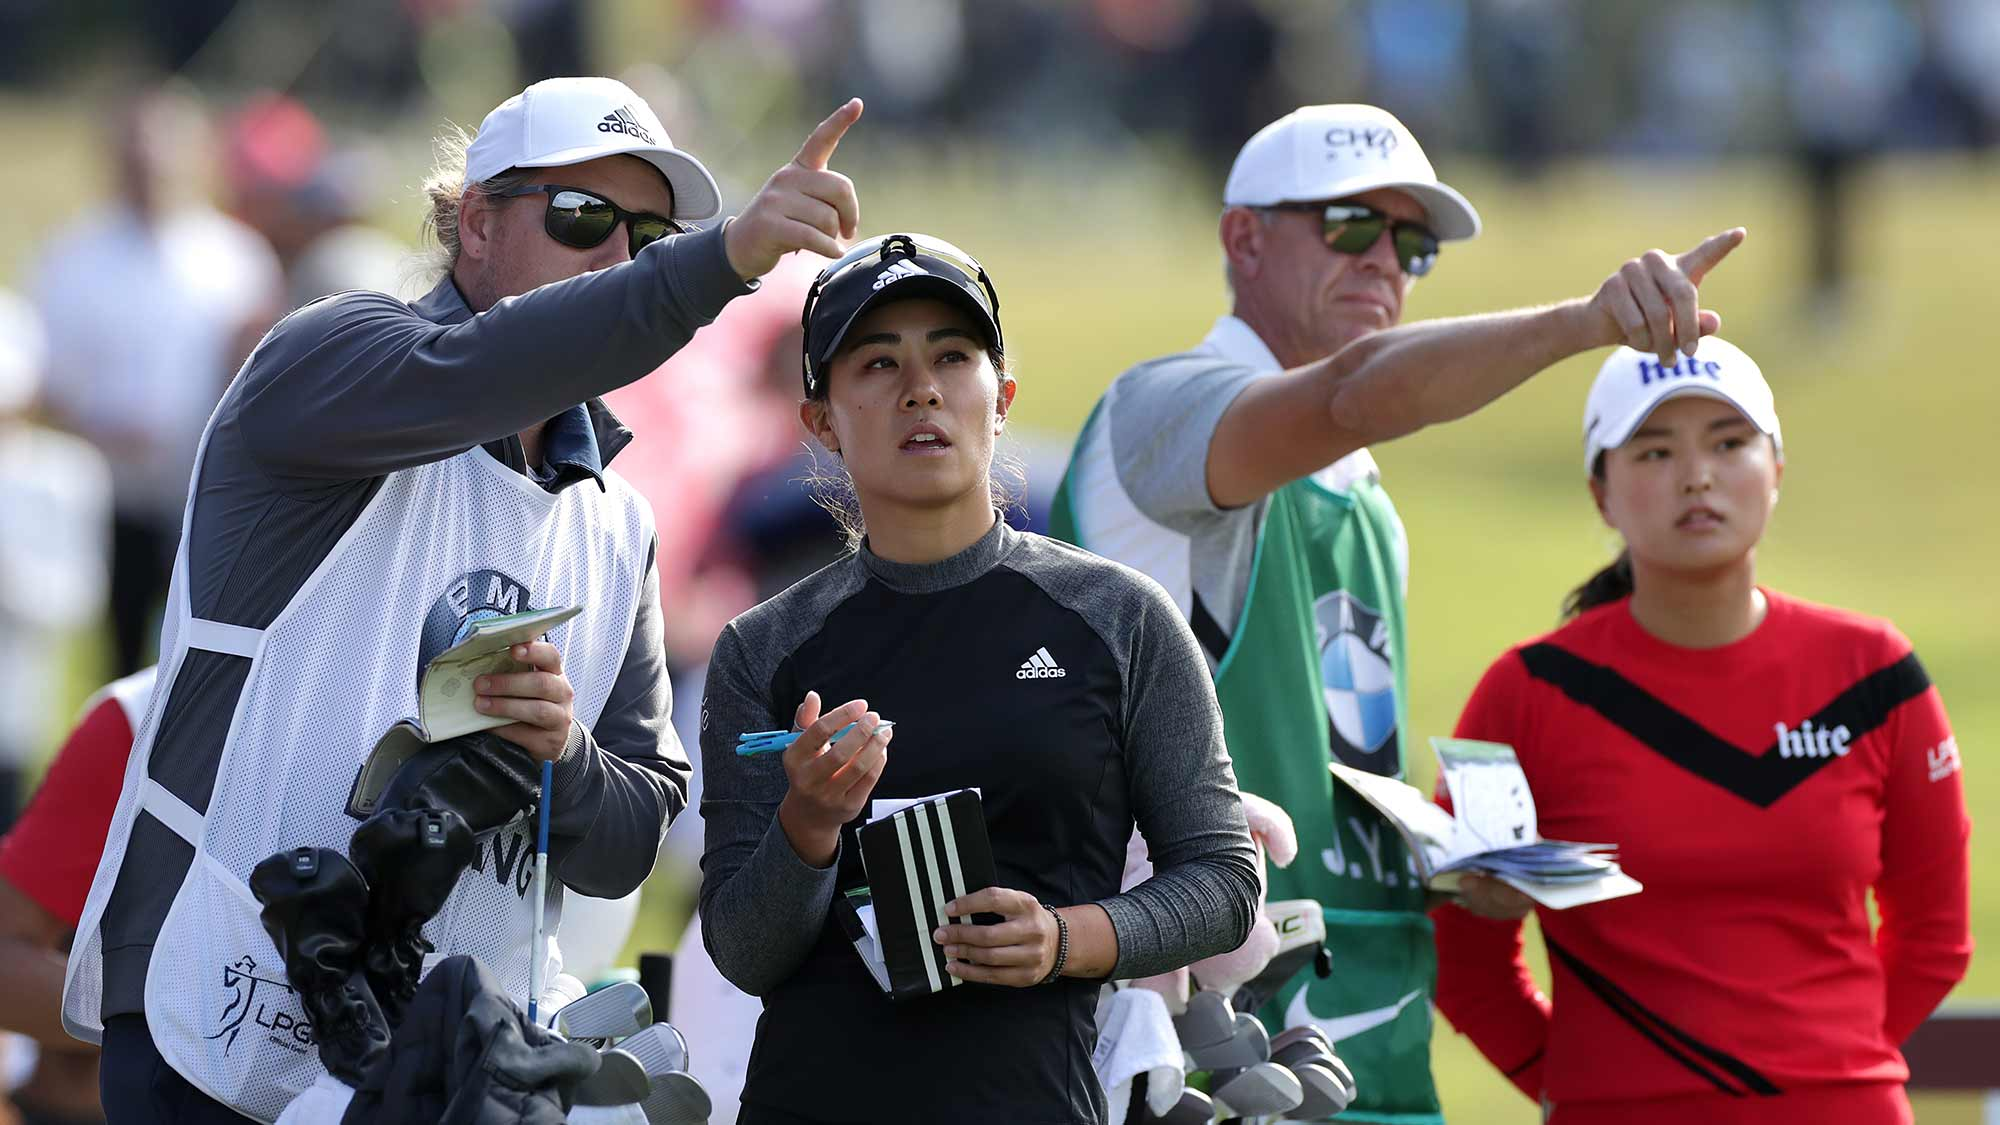 Danielle Kang and Jin Young Ko on the fifteen hole during Round 2 of 2019 BMW Ladies Championship at LPGA International Busan on October 25, 2019 in Busan, Republic of Korea